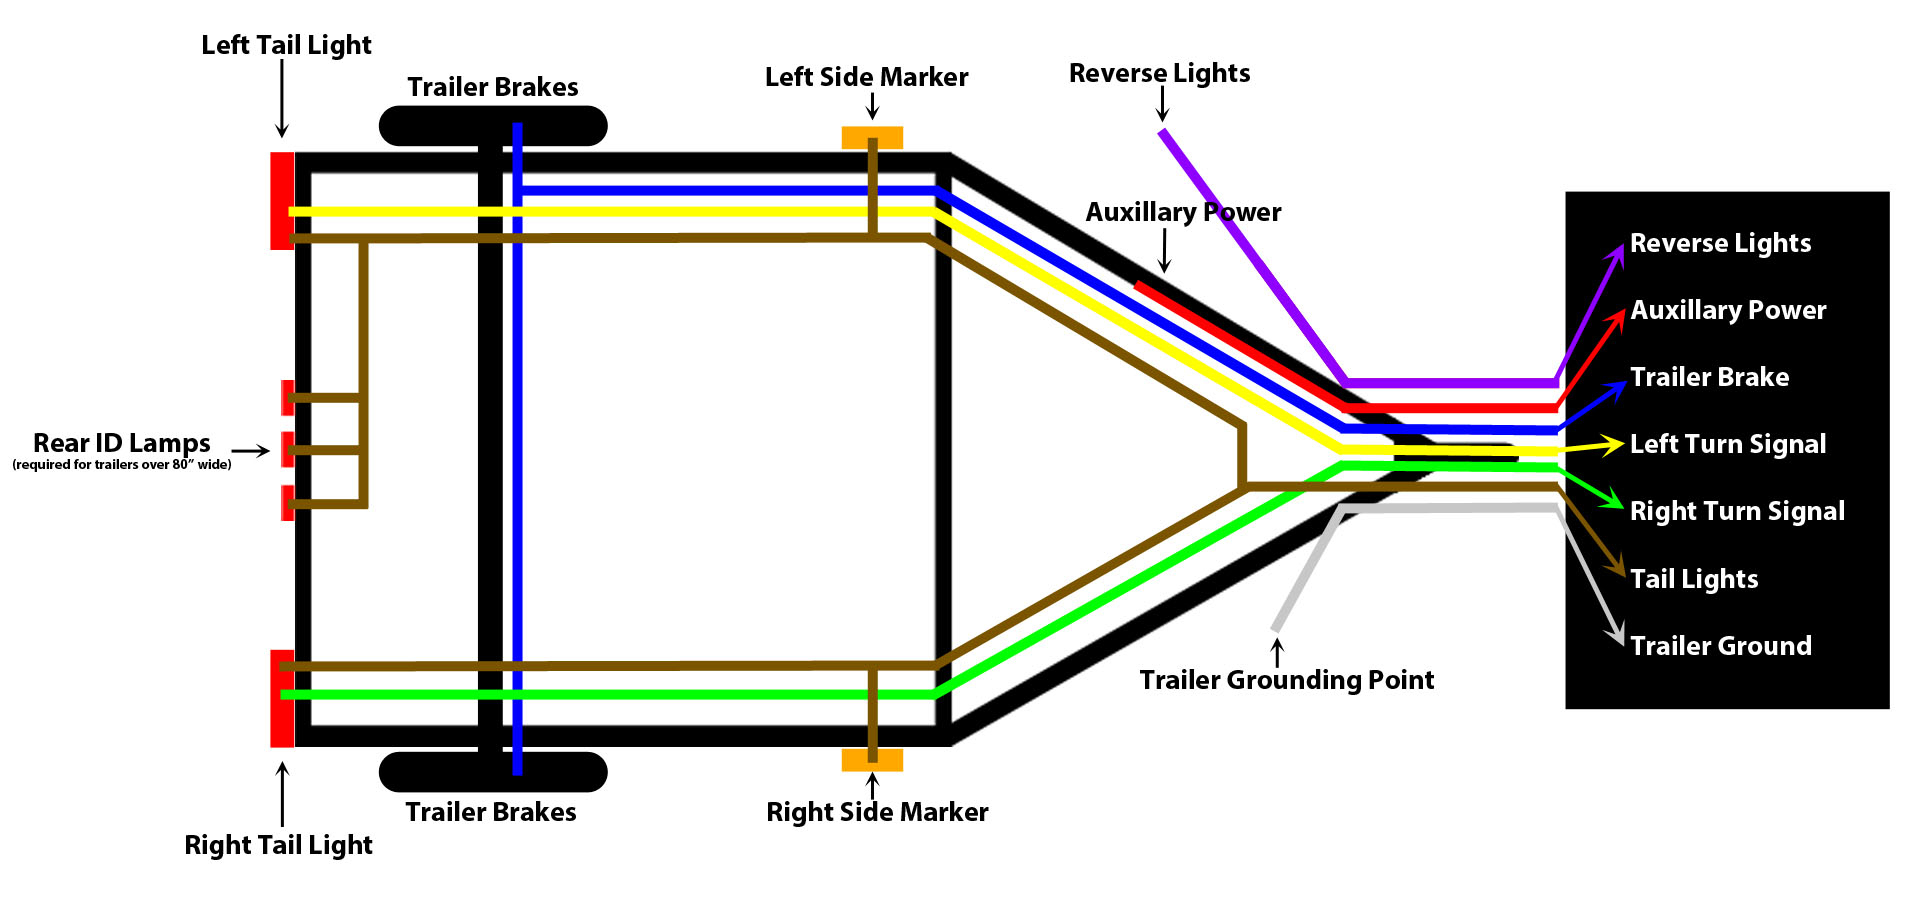 Boat Trailer Wiring Harness - Wiring Diagram Data - Basic Boat Trailer Wiring Diagram